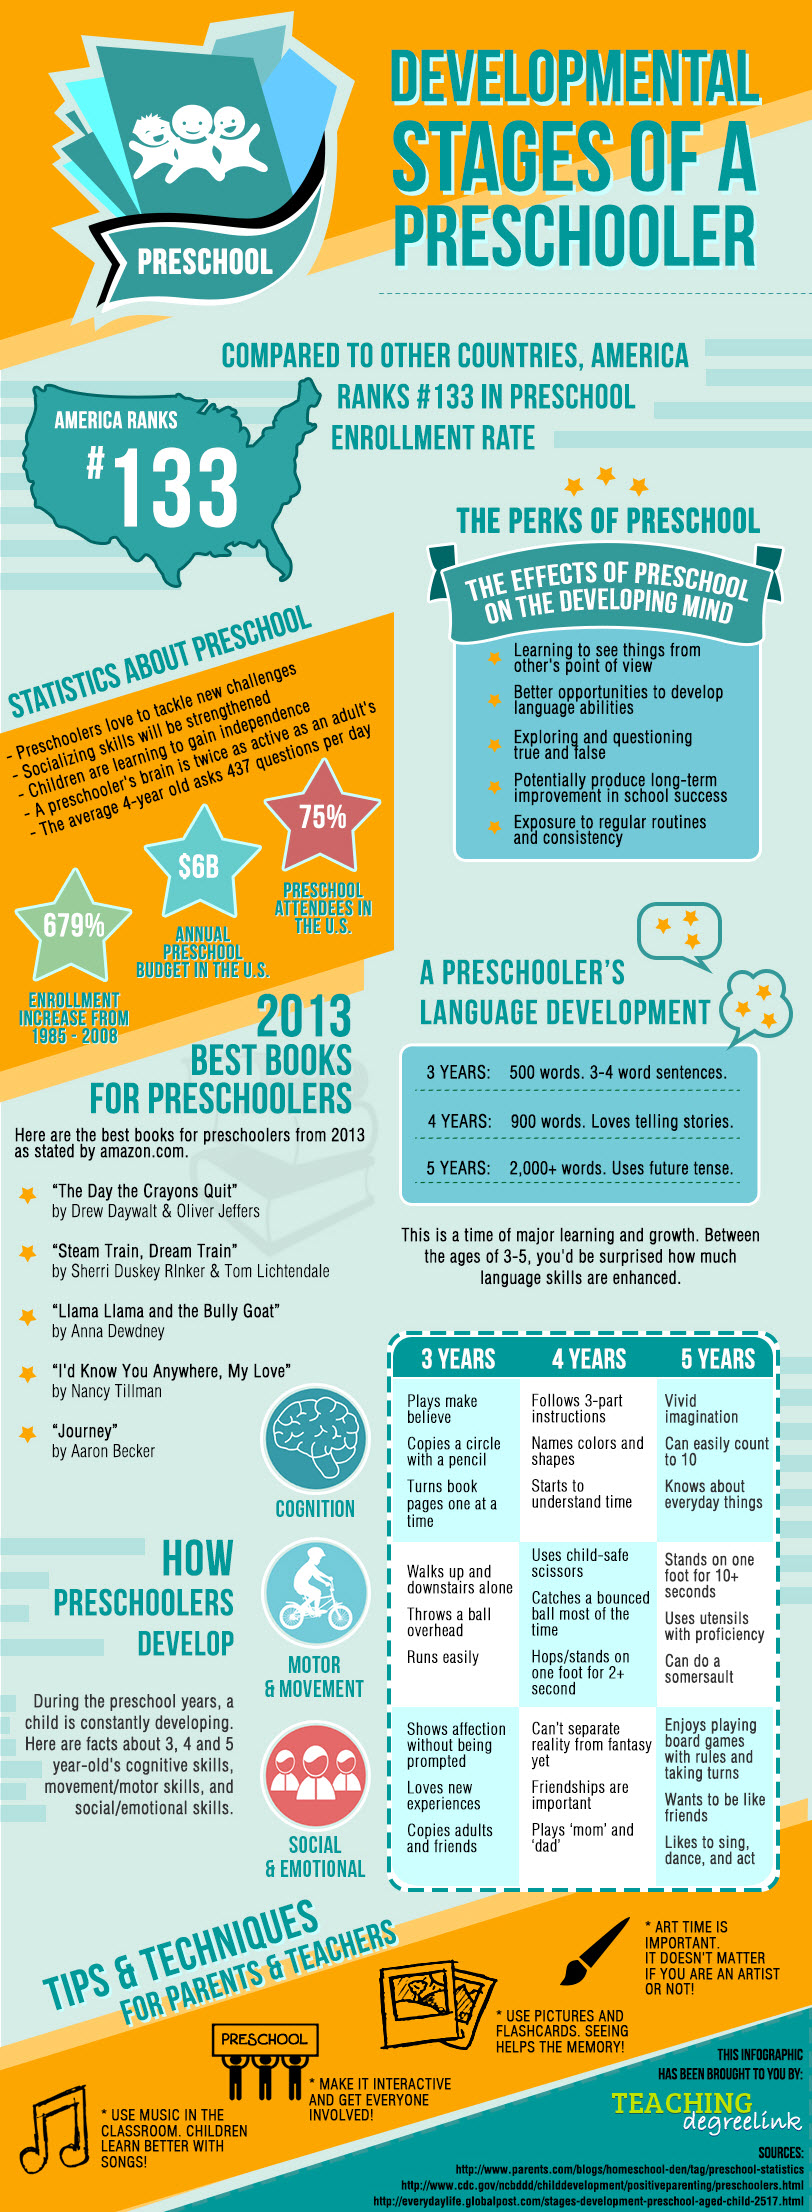 The Developmental Stages of a Preschooler